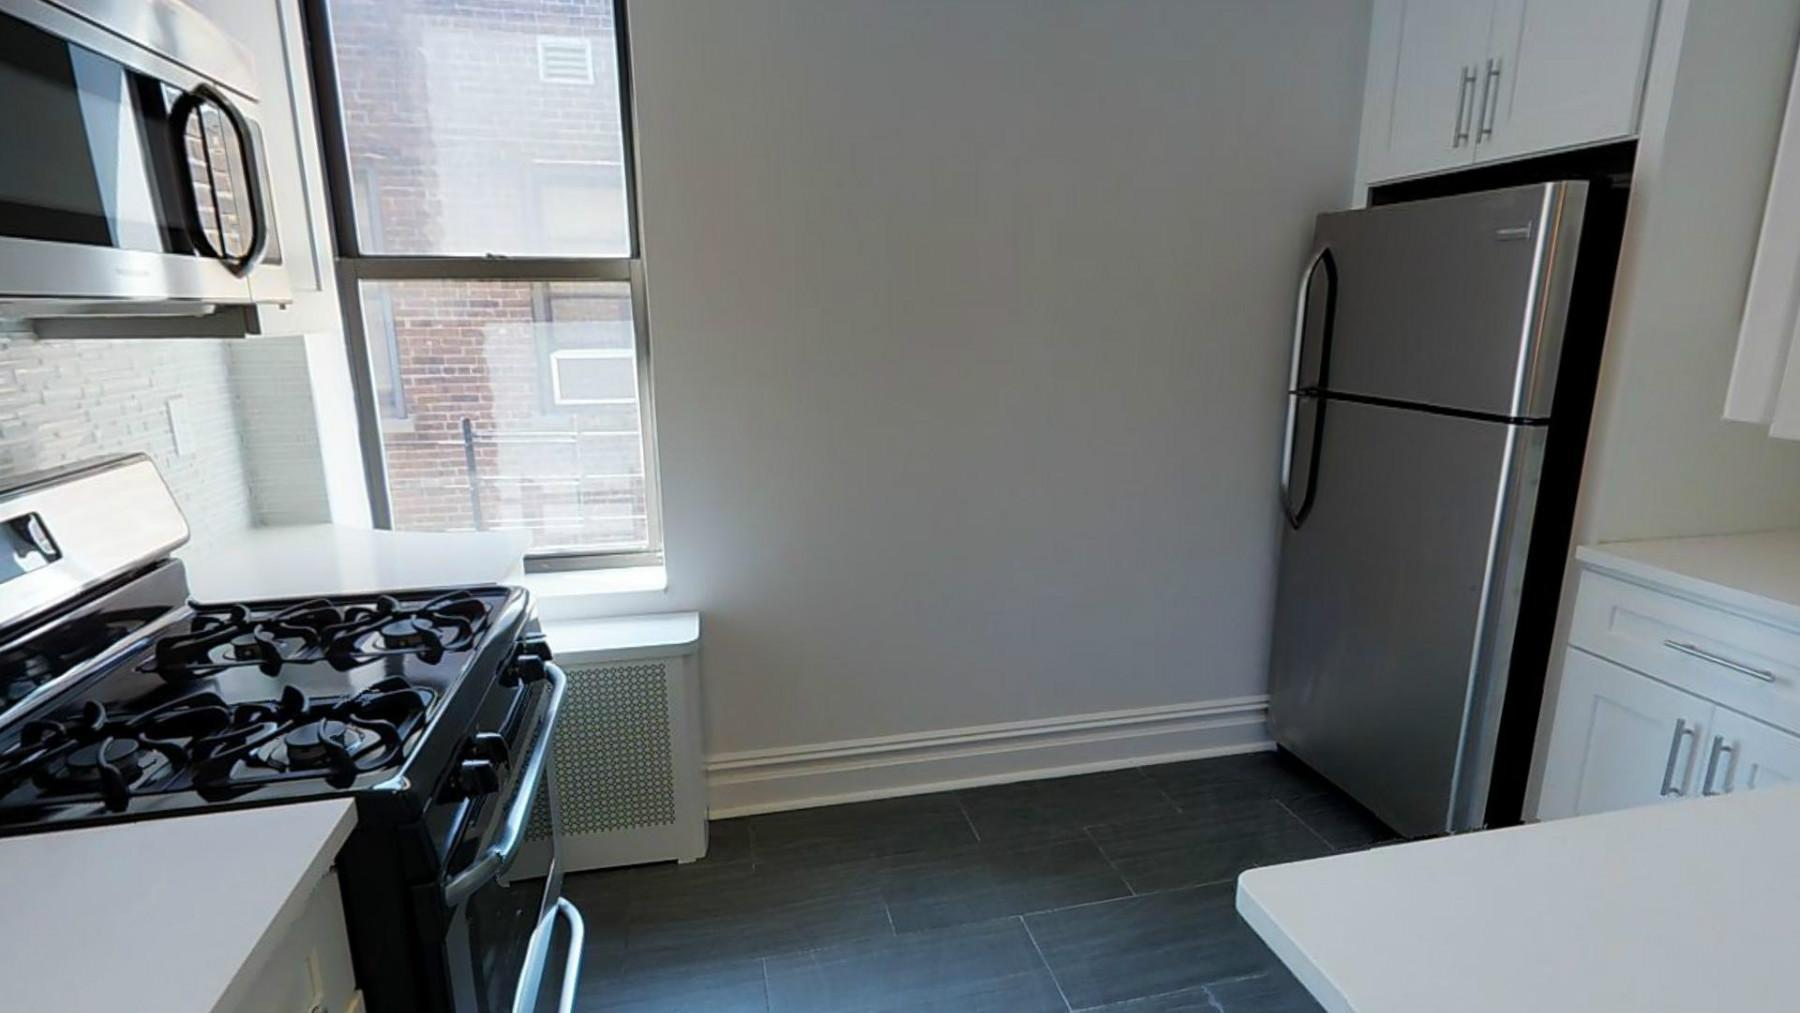 109-20 Queens Blvd 5A, FOREST HILLS, NY 11375